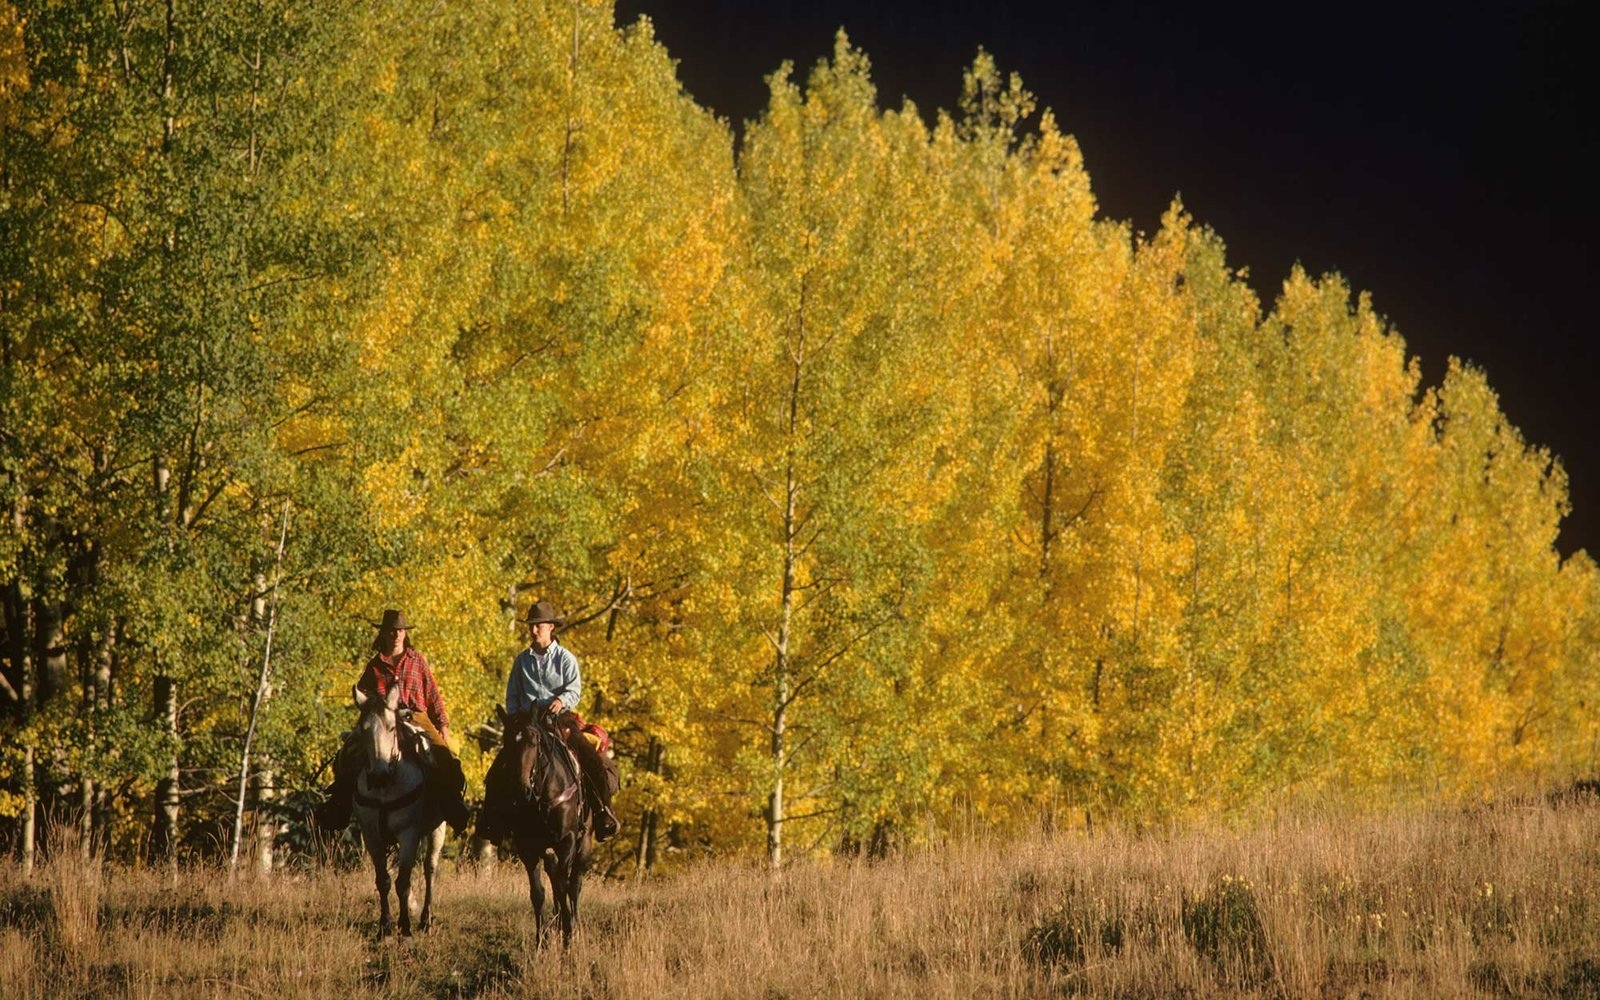 Horseback riding on a dude ranch in Colorado